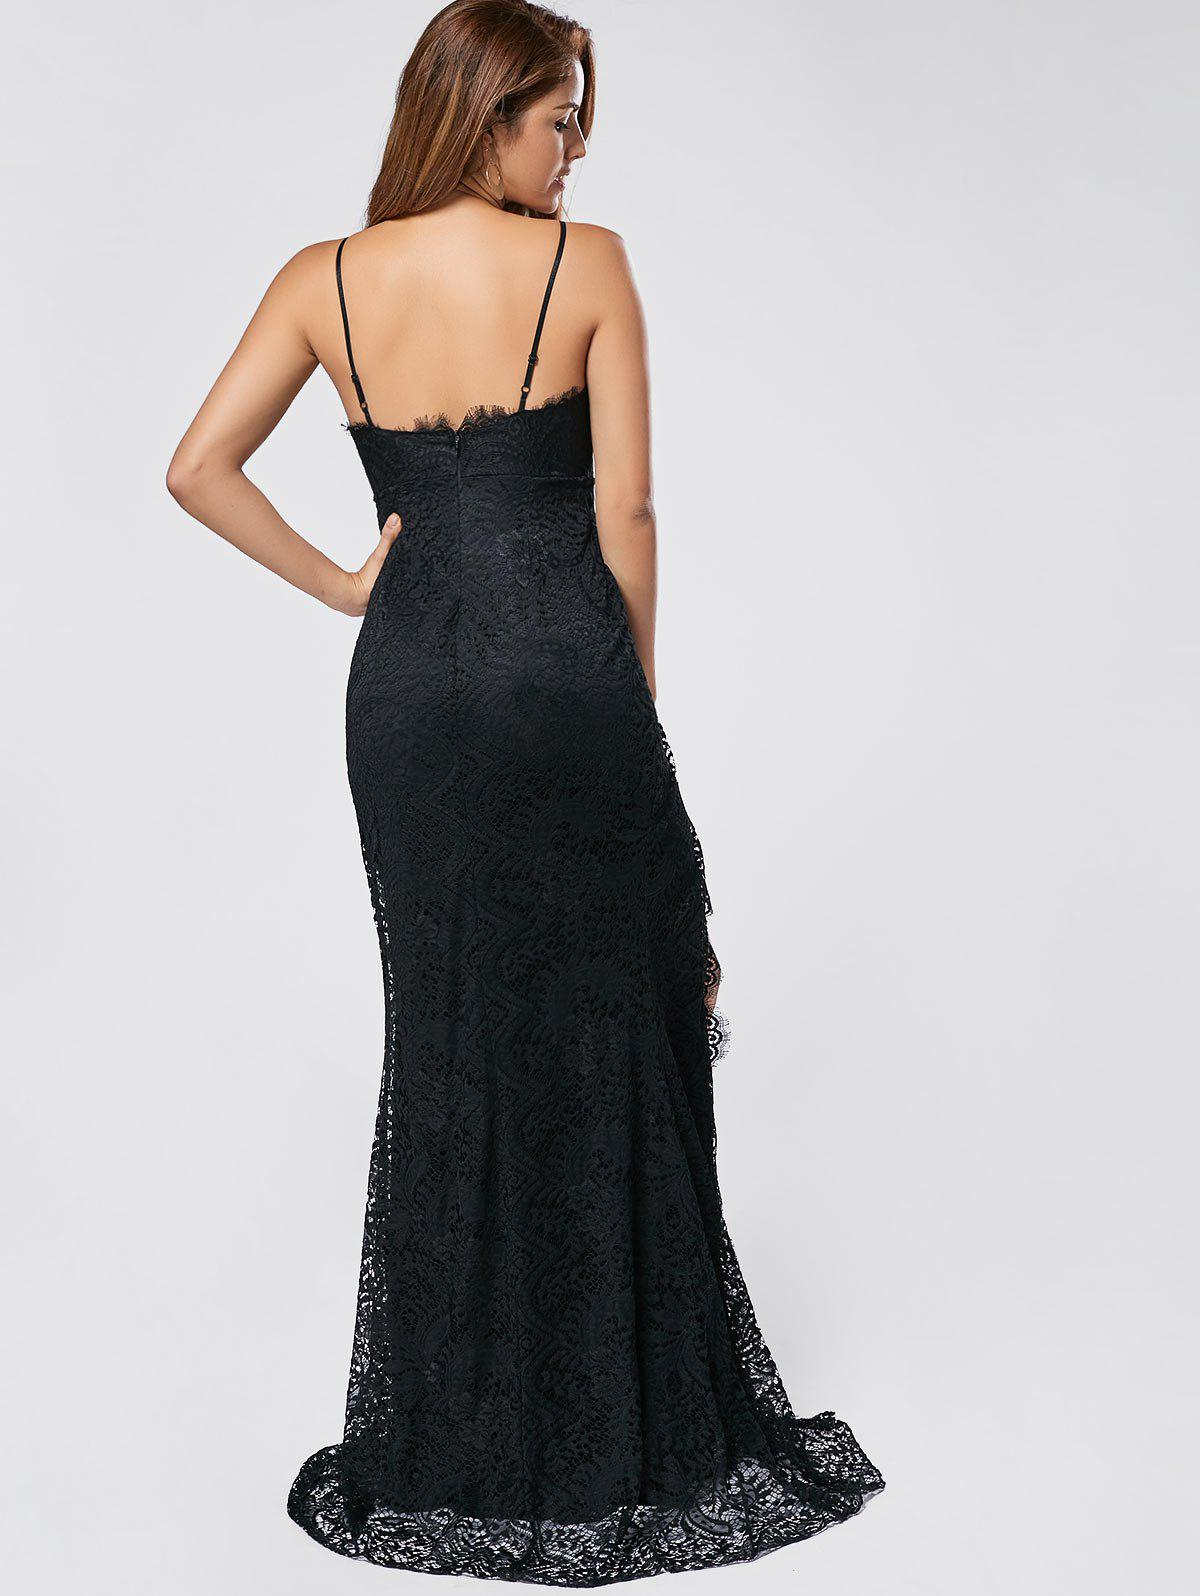 Slit Lace Maxi Slip Dress - BLACK S